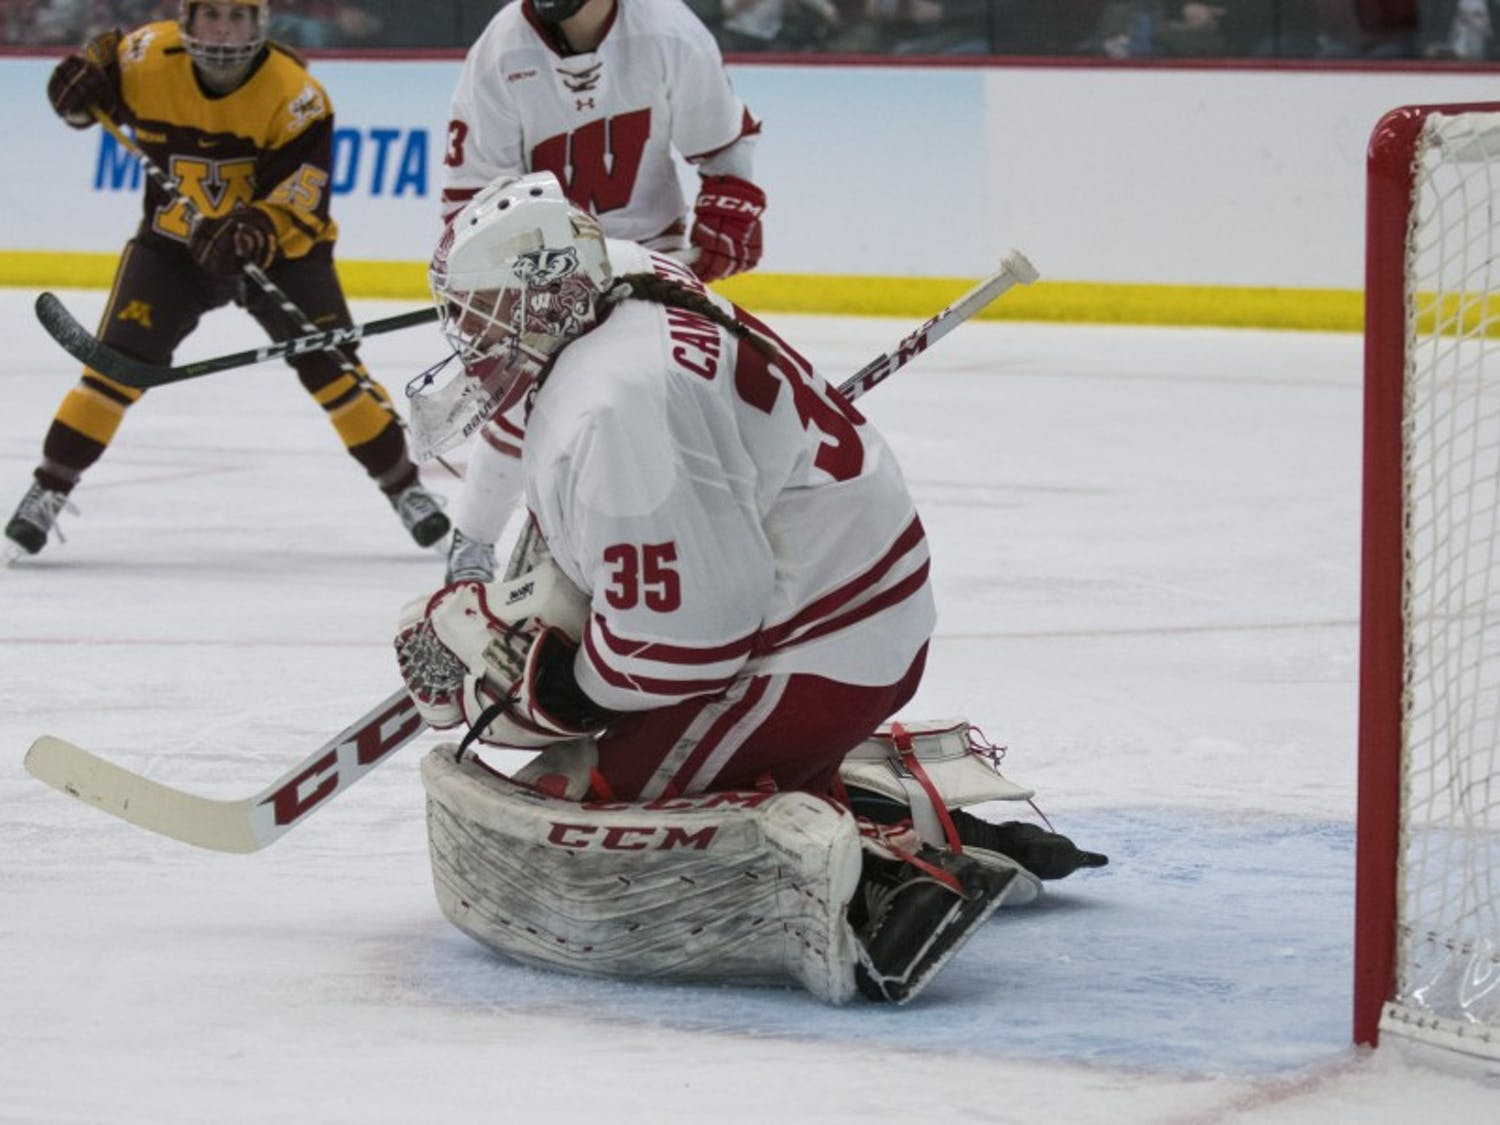 Last year Kristin Campbell surprised everyone with her performance and was named the WCHA goaltender of the year, but 2018-19 hasn't started as well for the redshirt junior.